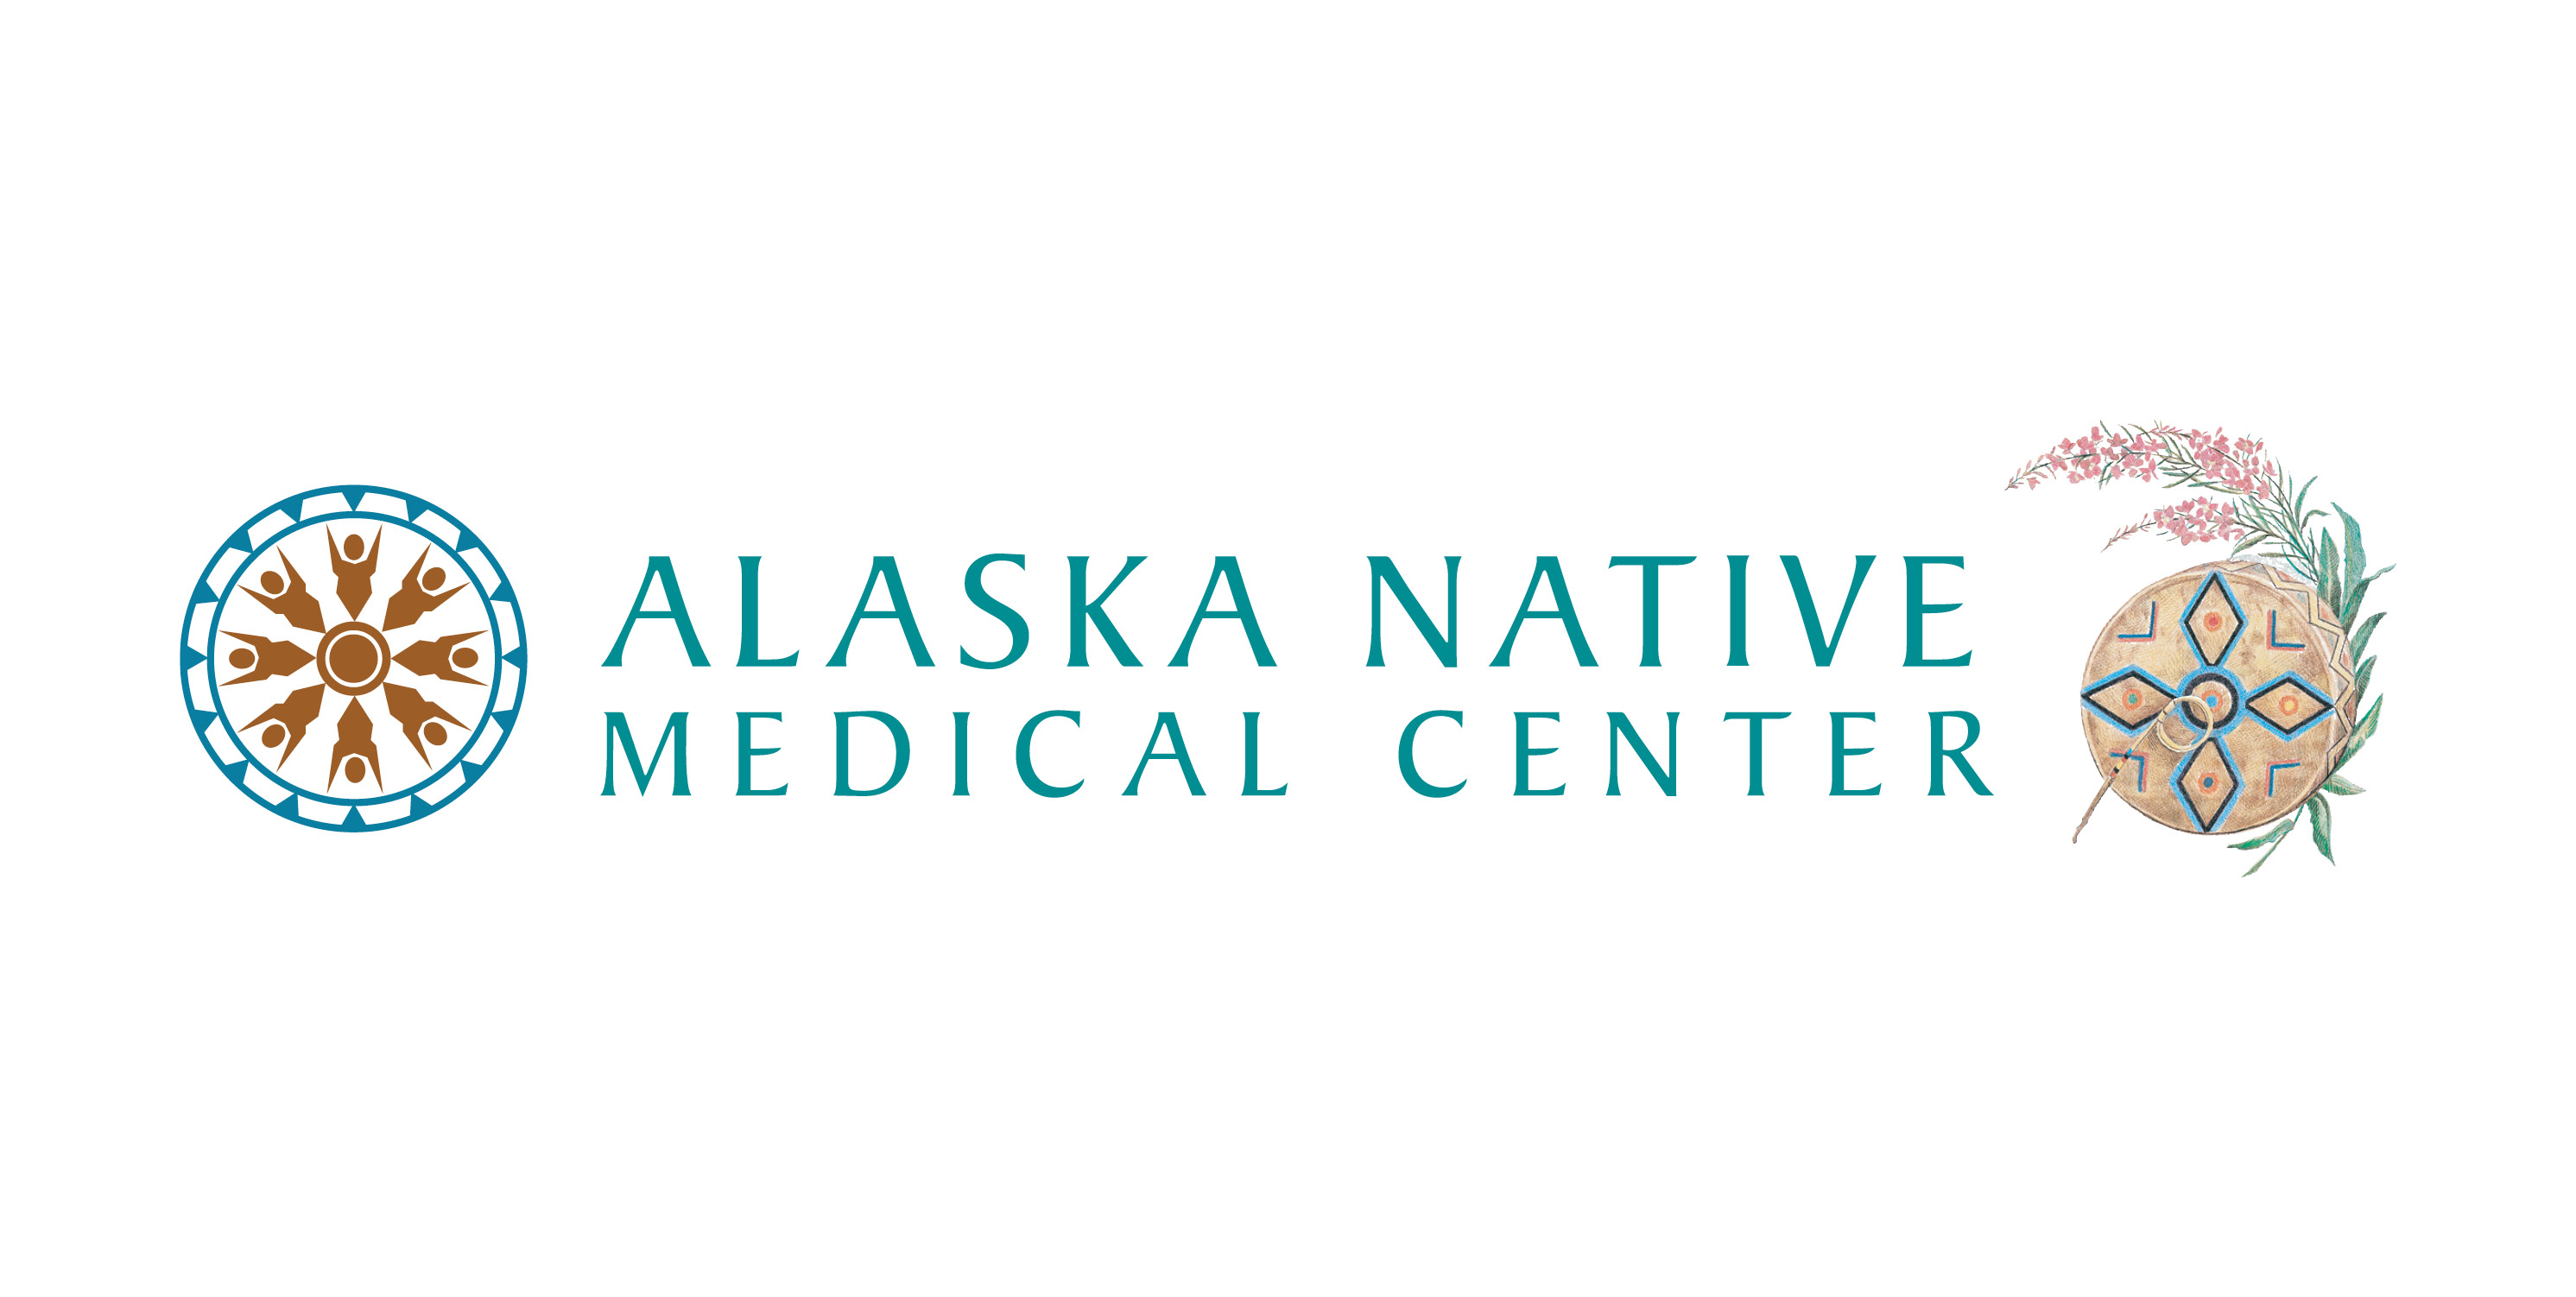 CHAP MEDICAL DIRECTOR - Meaningful Practice and Flexible Scheduling - ALASKA NATIVE MEDICAL CENTER